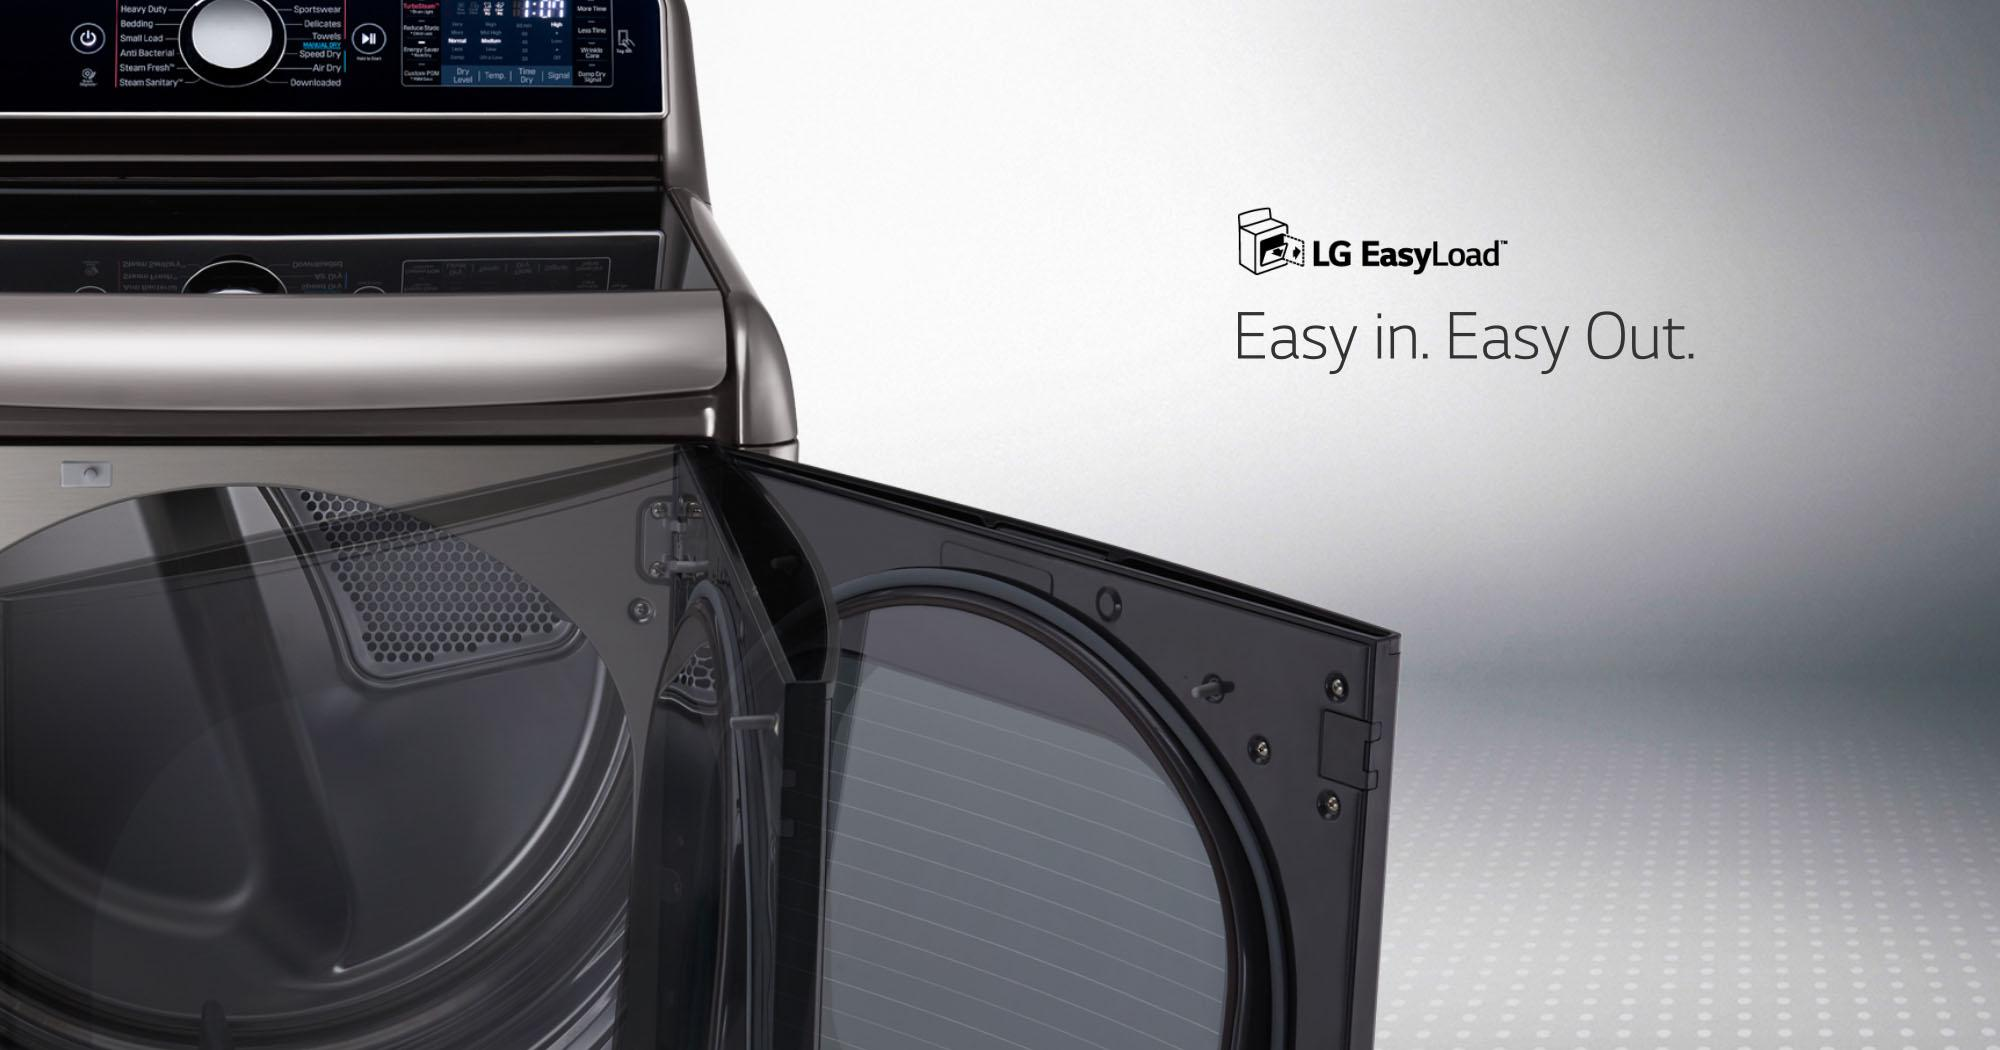 The LG DLEX7700VE electric dryer does laundry at the speed of life, thanks to the EasyLoad™ Door and other helpful technologies.